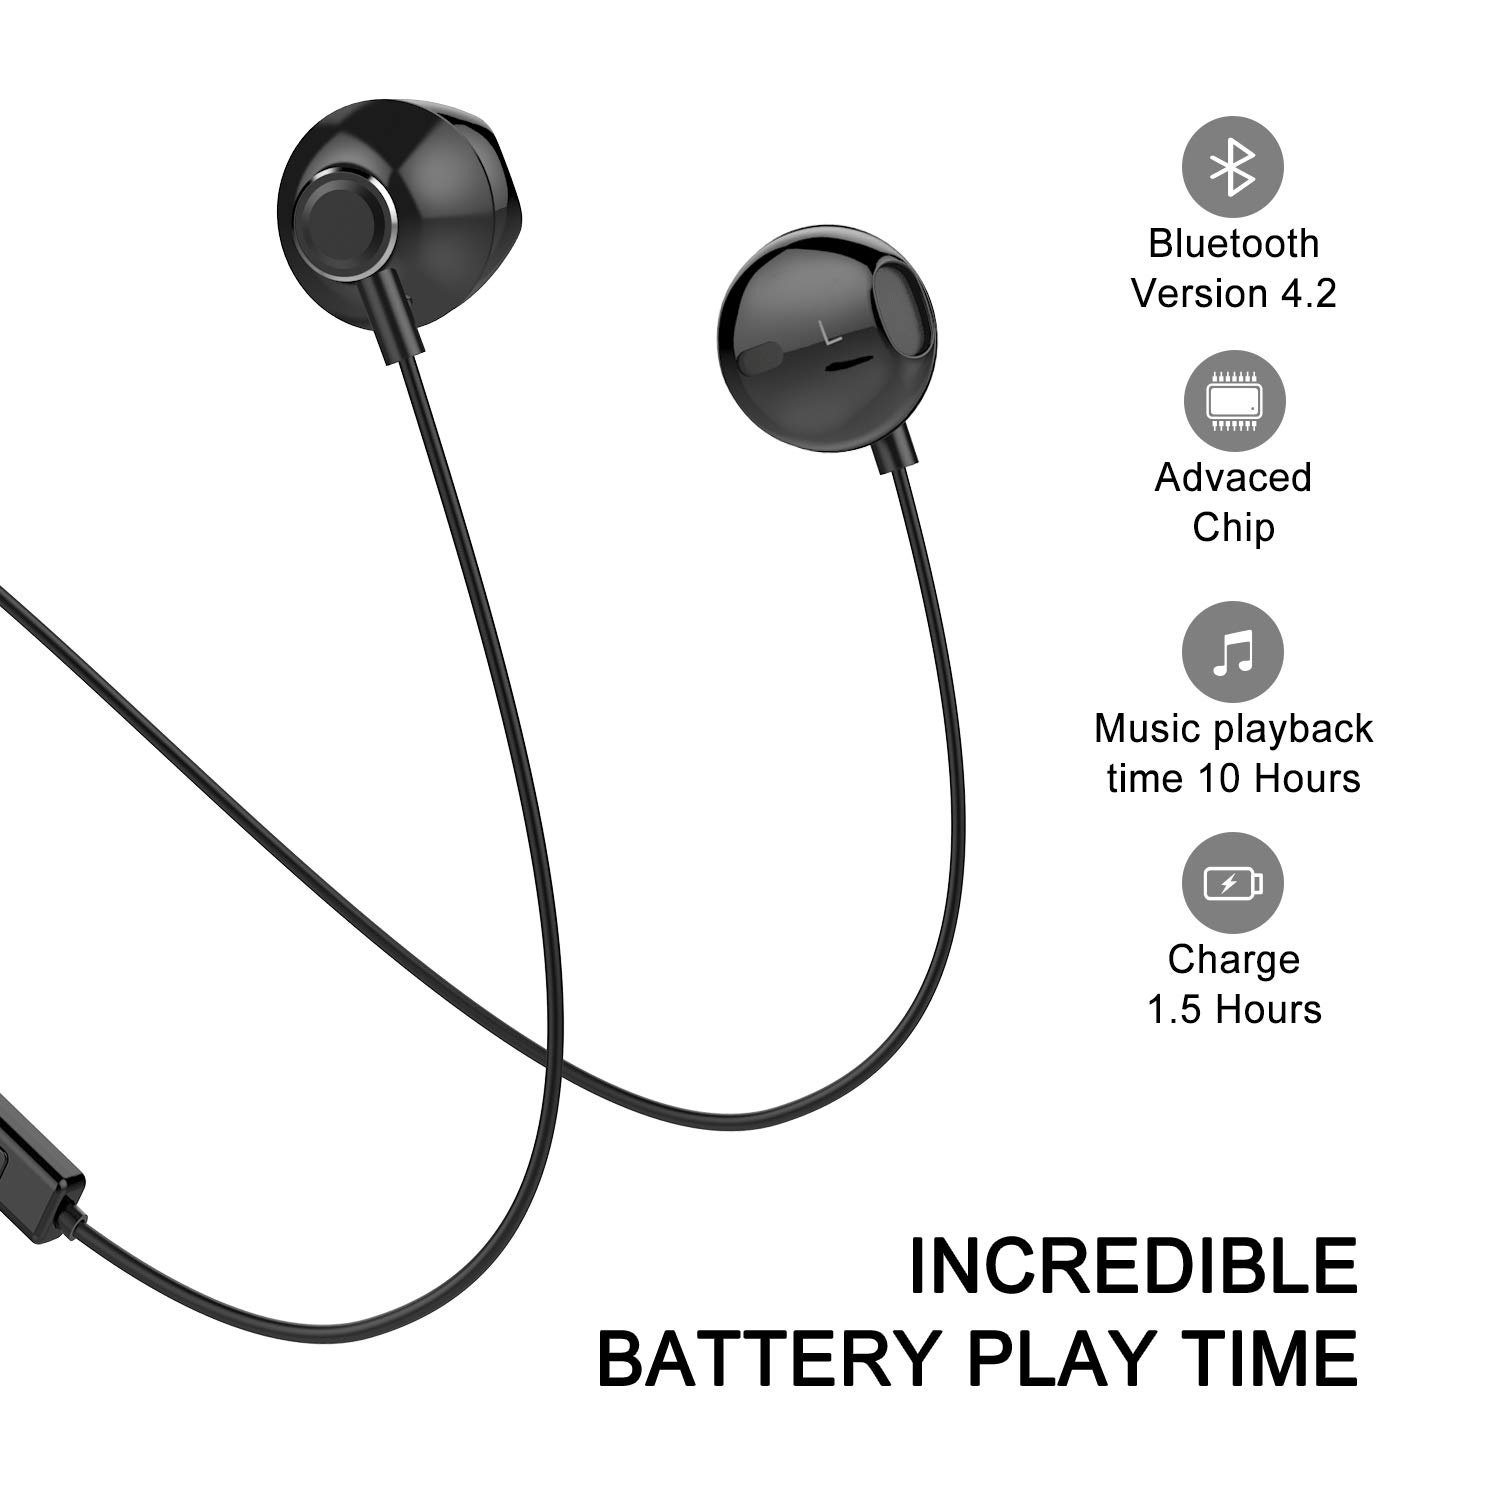 Bluetooth Headphones, Yostyle Magnetic Wireless Earbuds Bluetooth 5.0 Noise Canceling Earphones Sweatproof Sport Headset w/Mic for iPhone X/XR/XS/8/7/6 Plus, Galaxy S10/S9/S8,10 Hrs Work Time(Black)